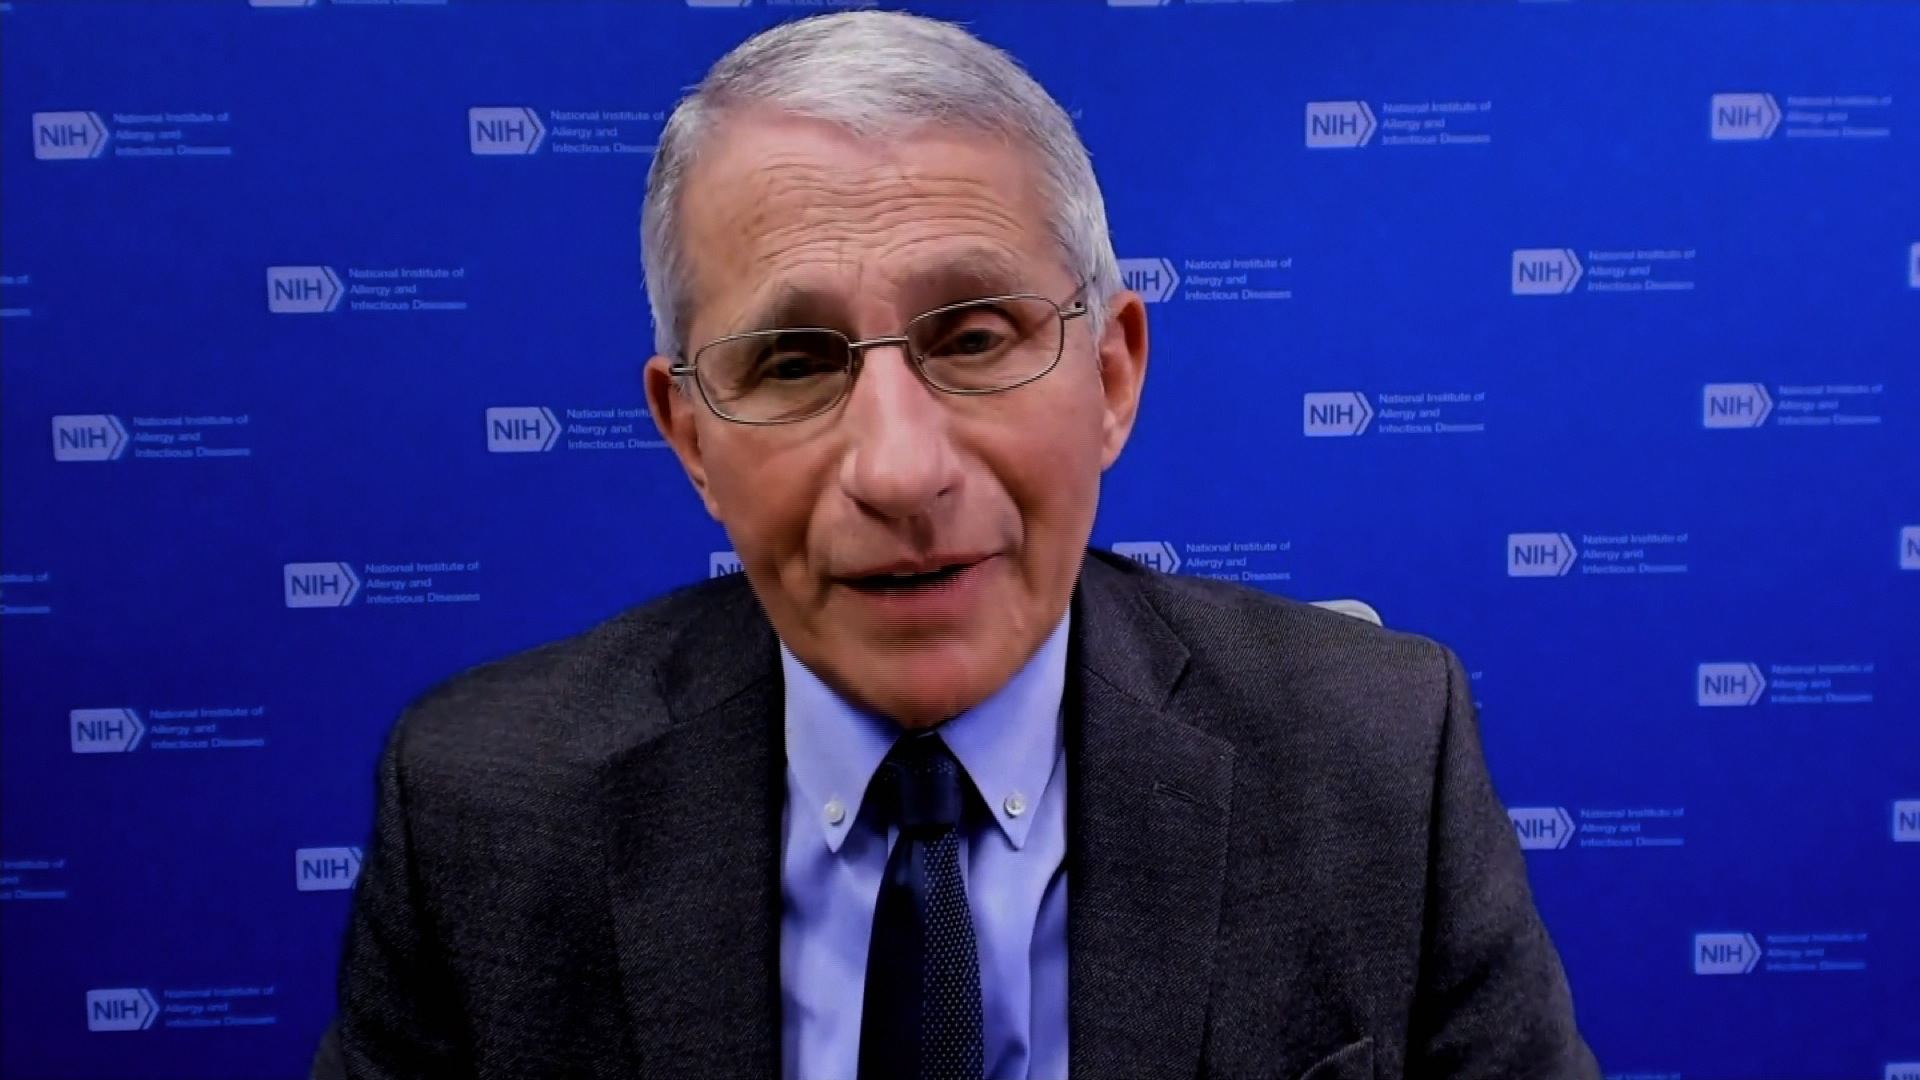 Dr. Anthony Fauci speaks during an interview on January 19.